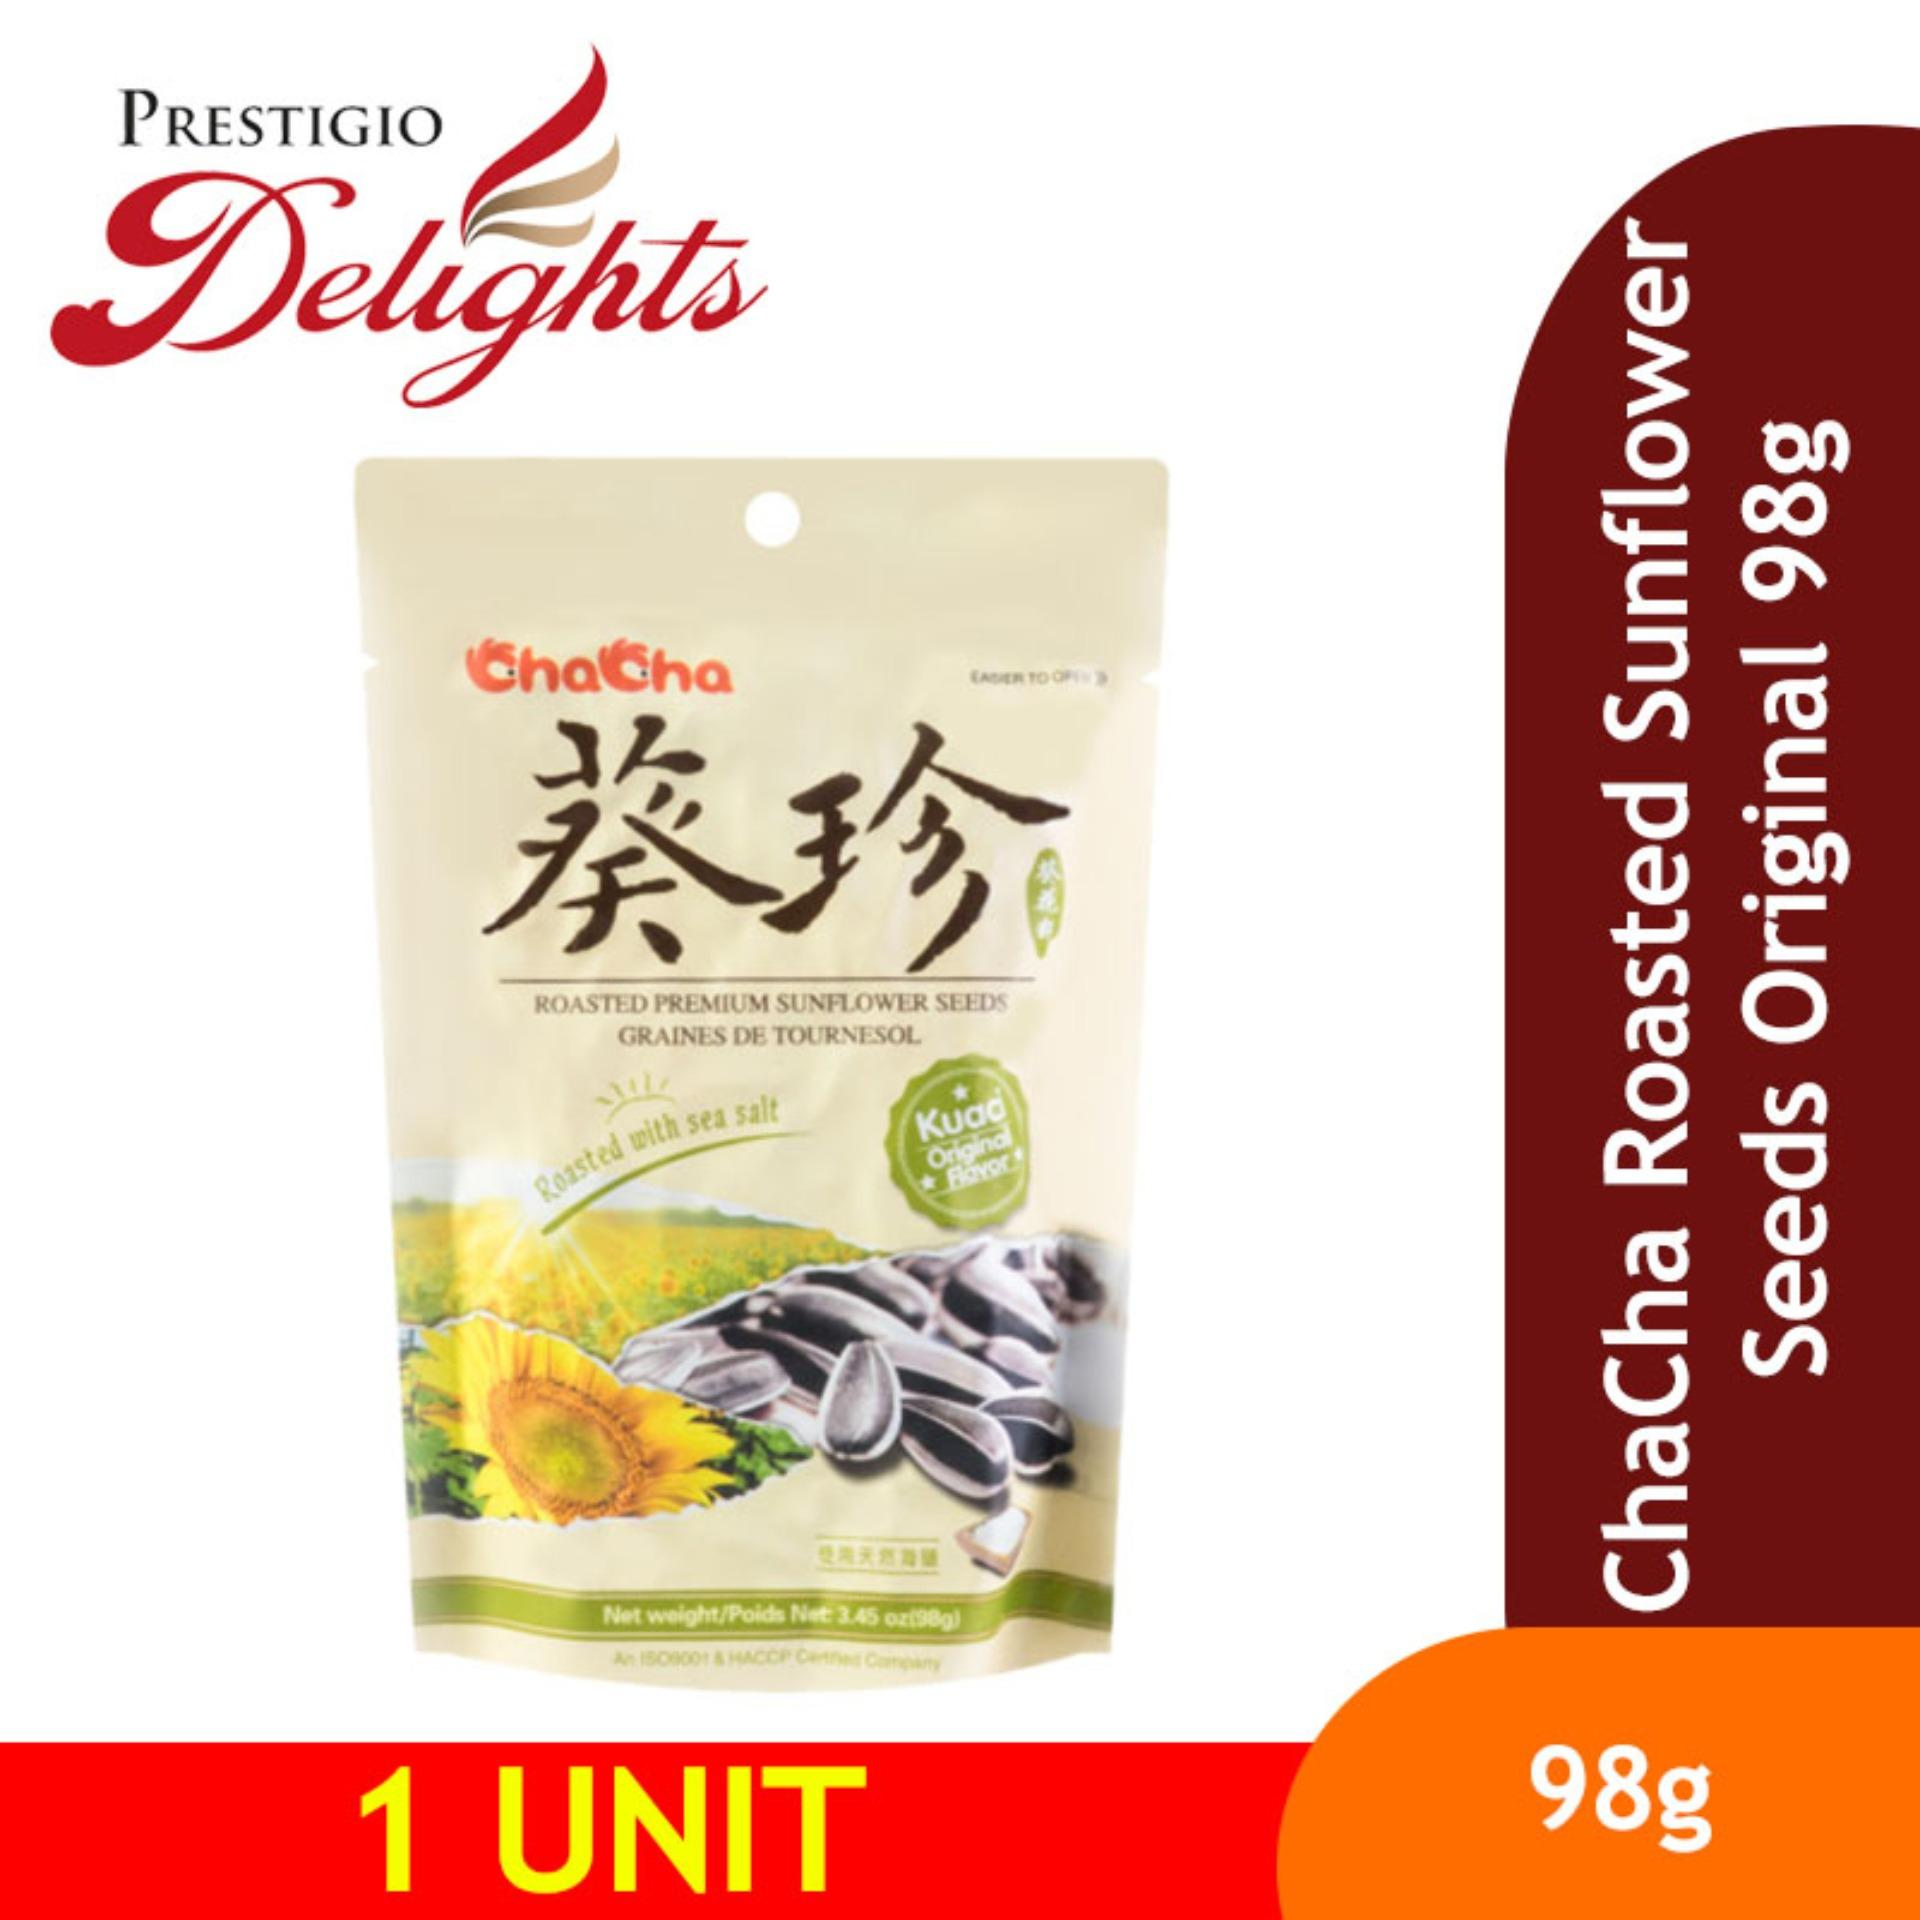 Chacha Roasted Sunflower Seeds Original 98g By Prestigio Delights.